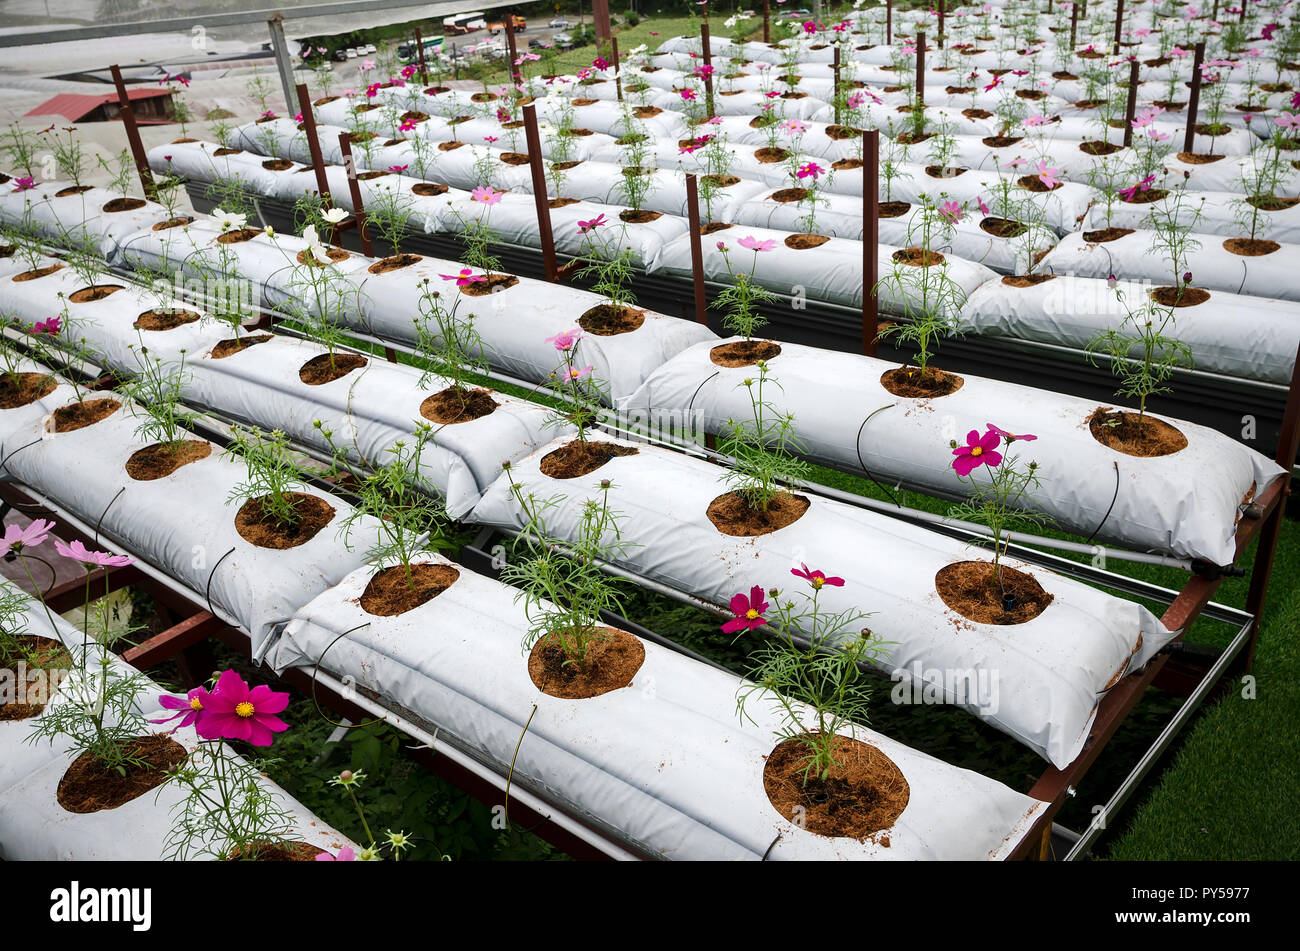 Cultivation Of Gerbera Flowers In Greenhouse In Cameron Highland Malaysia Modern Flower Cultivation In Greenhouse Stock Photo Alamy